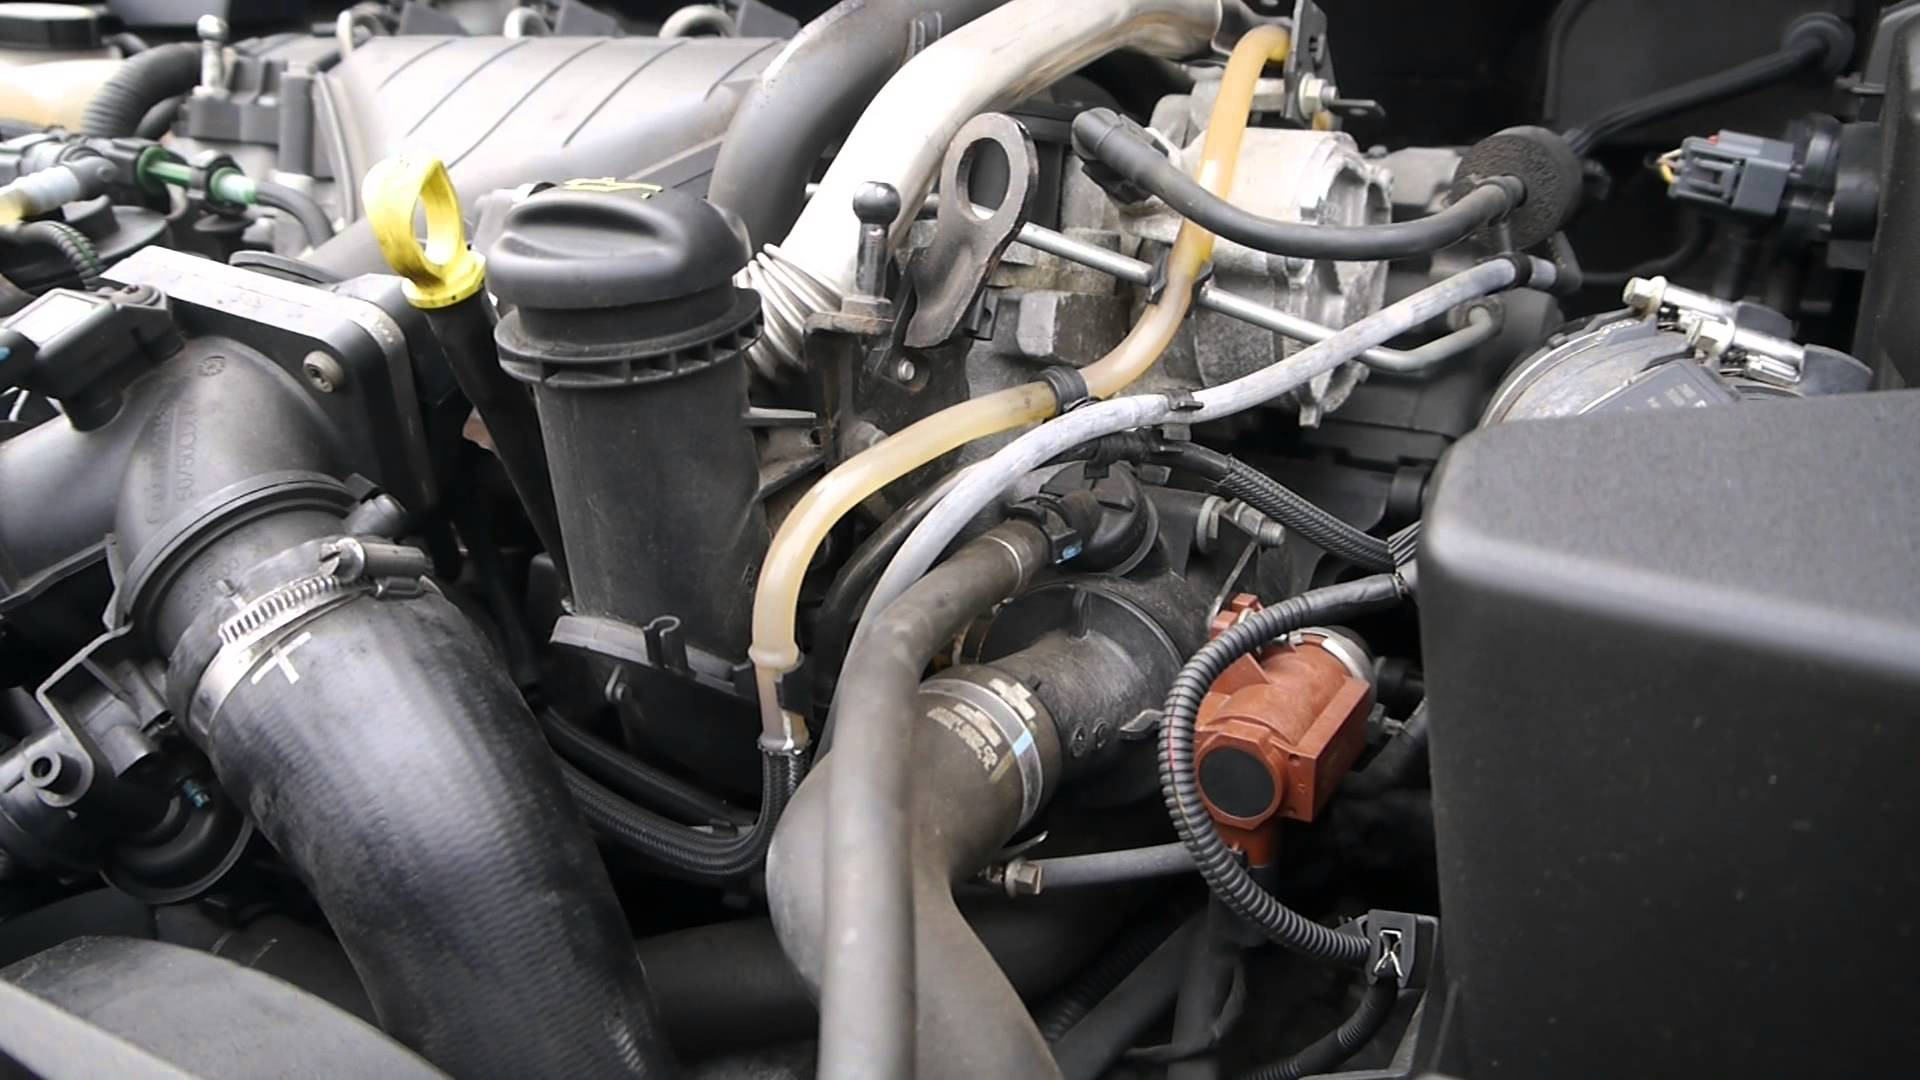 Car Fuel System Diagram Problems with Volvo V50 Se 20d Diesel Engine Air In the Fuel System Of Car Fuel System Diagram